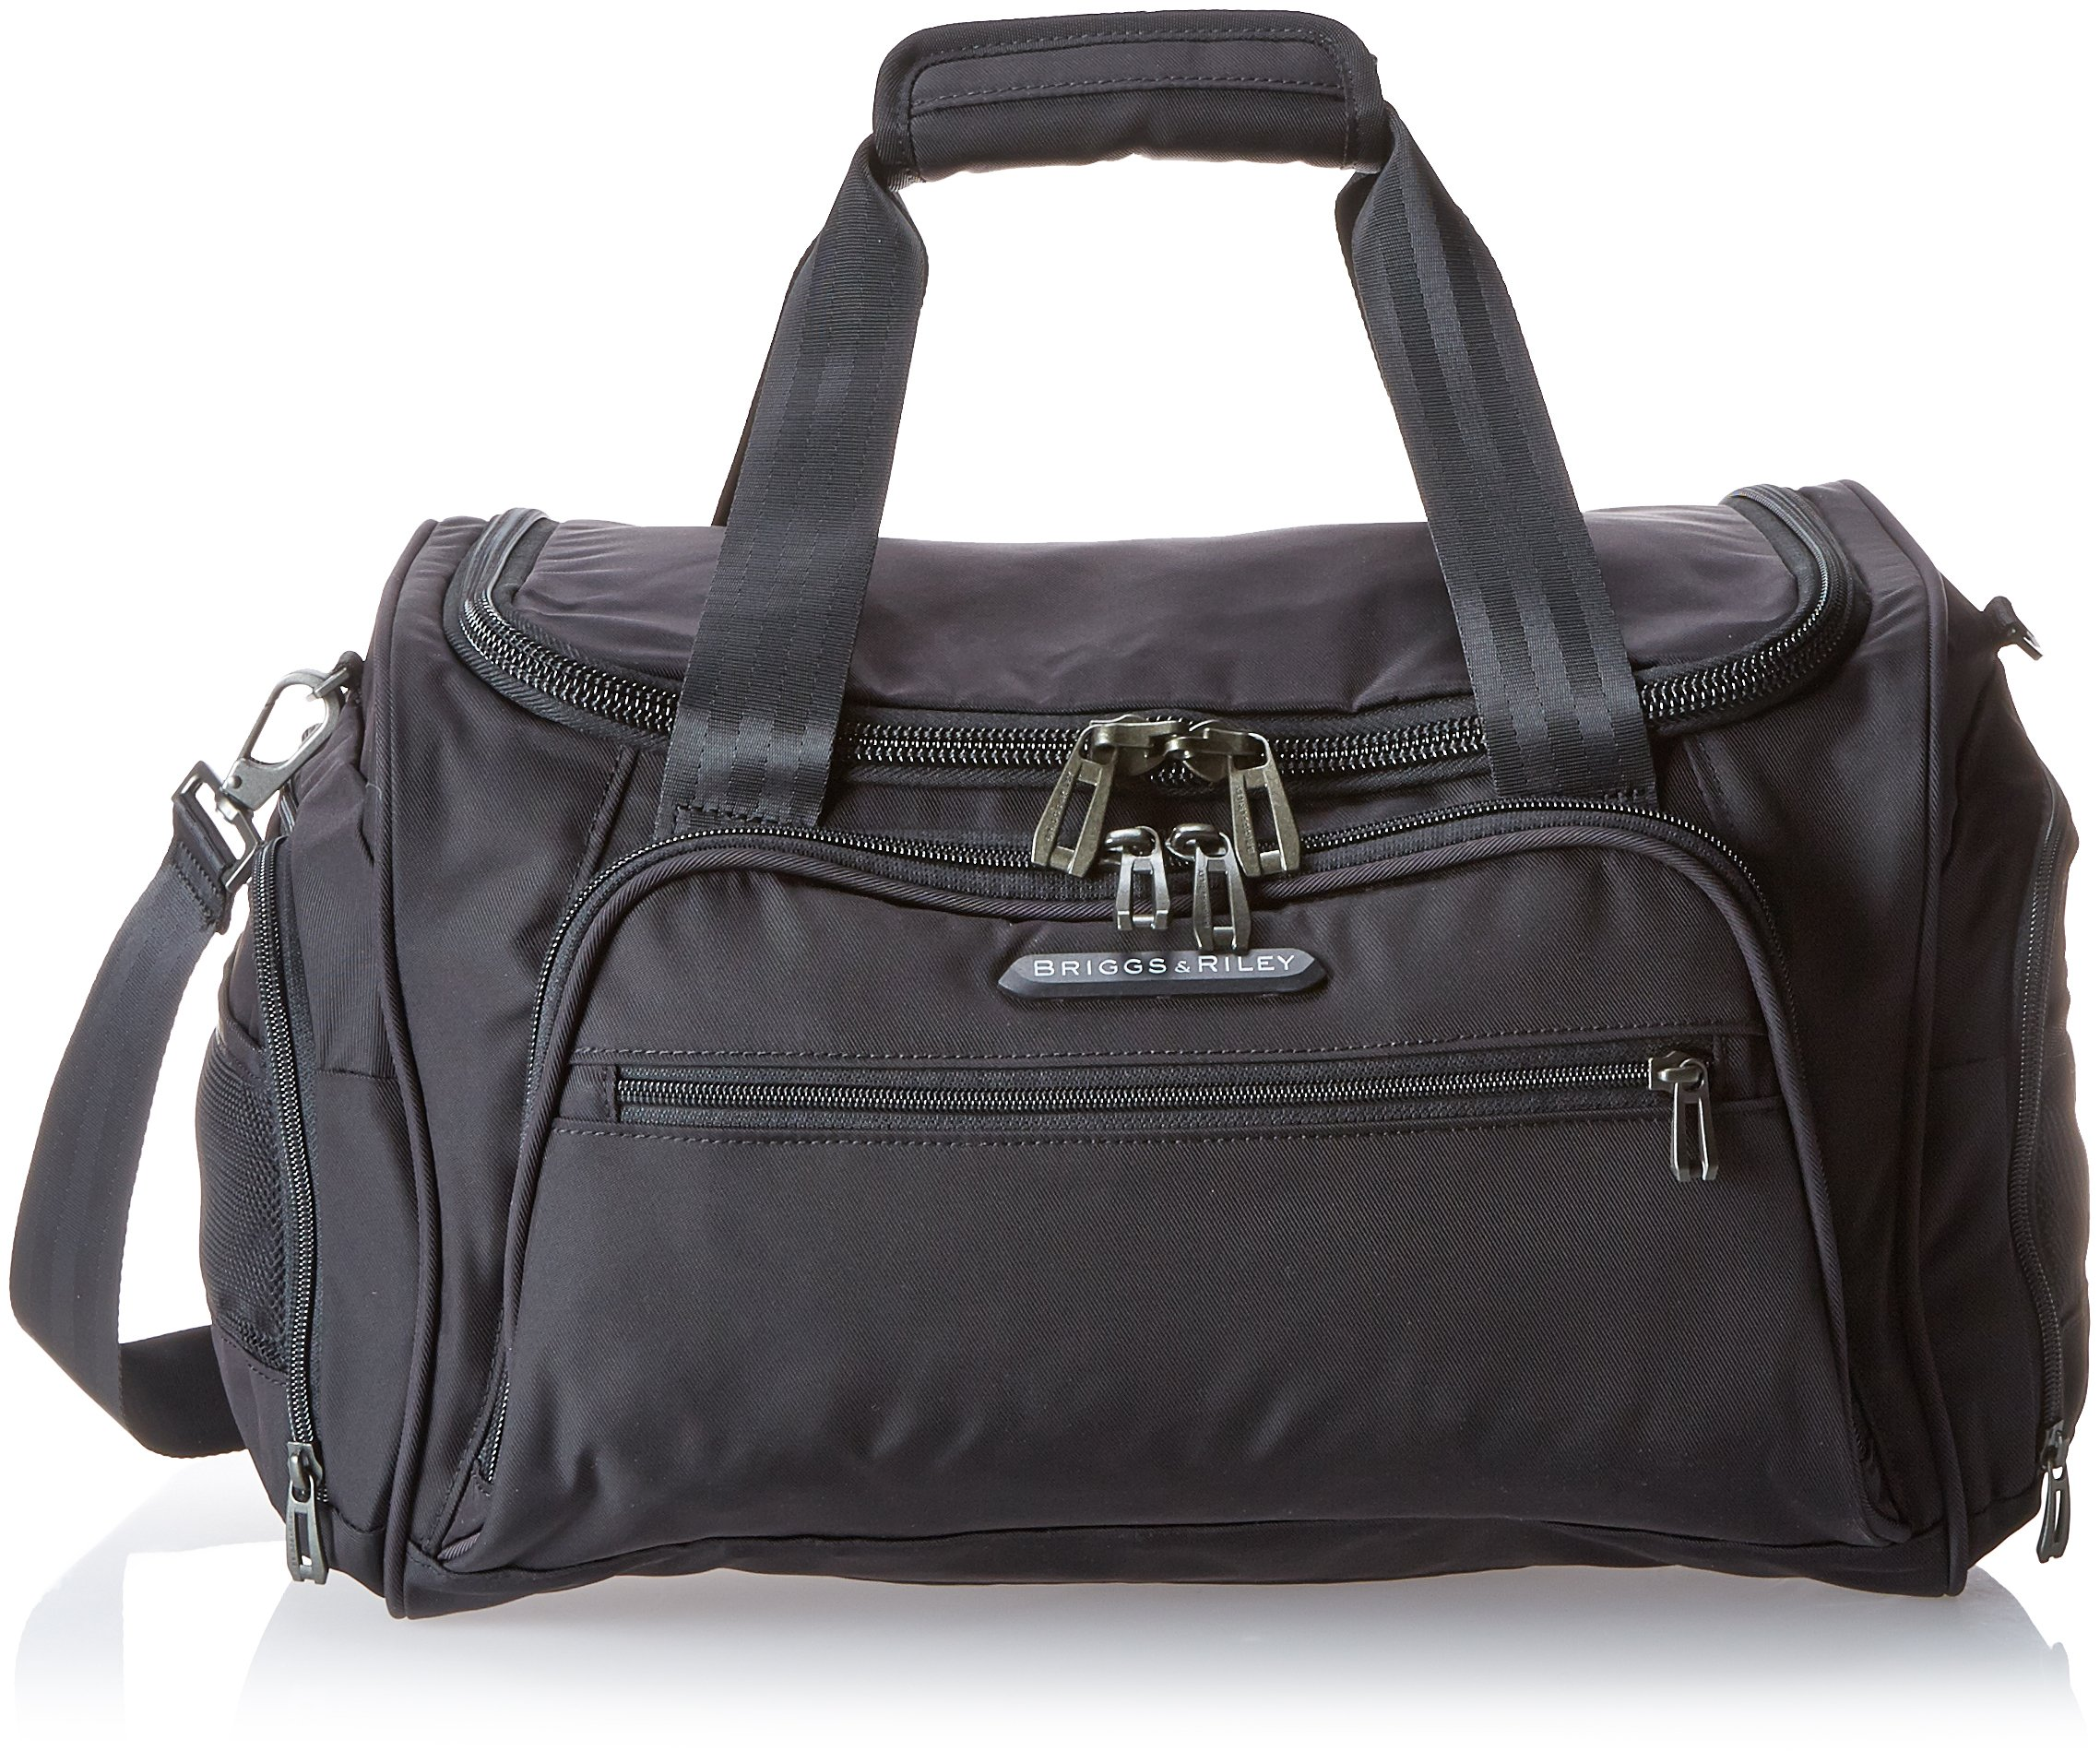 Briggs & Riley Cabin Duffle, Black, One Size by Briggs & Riley